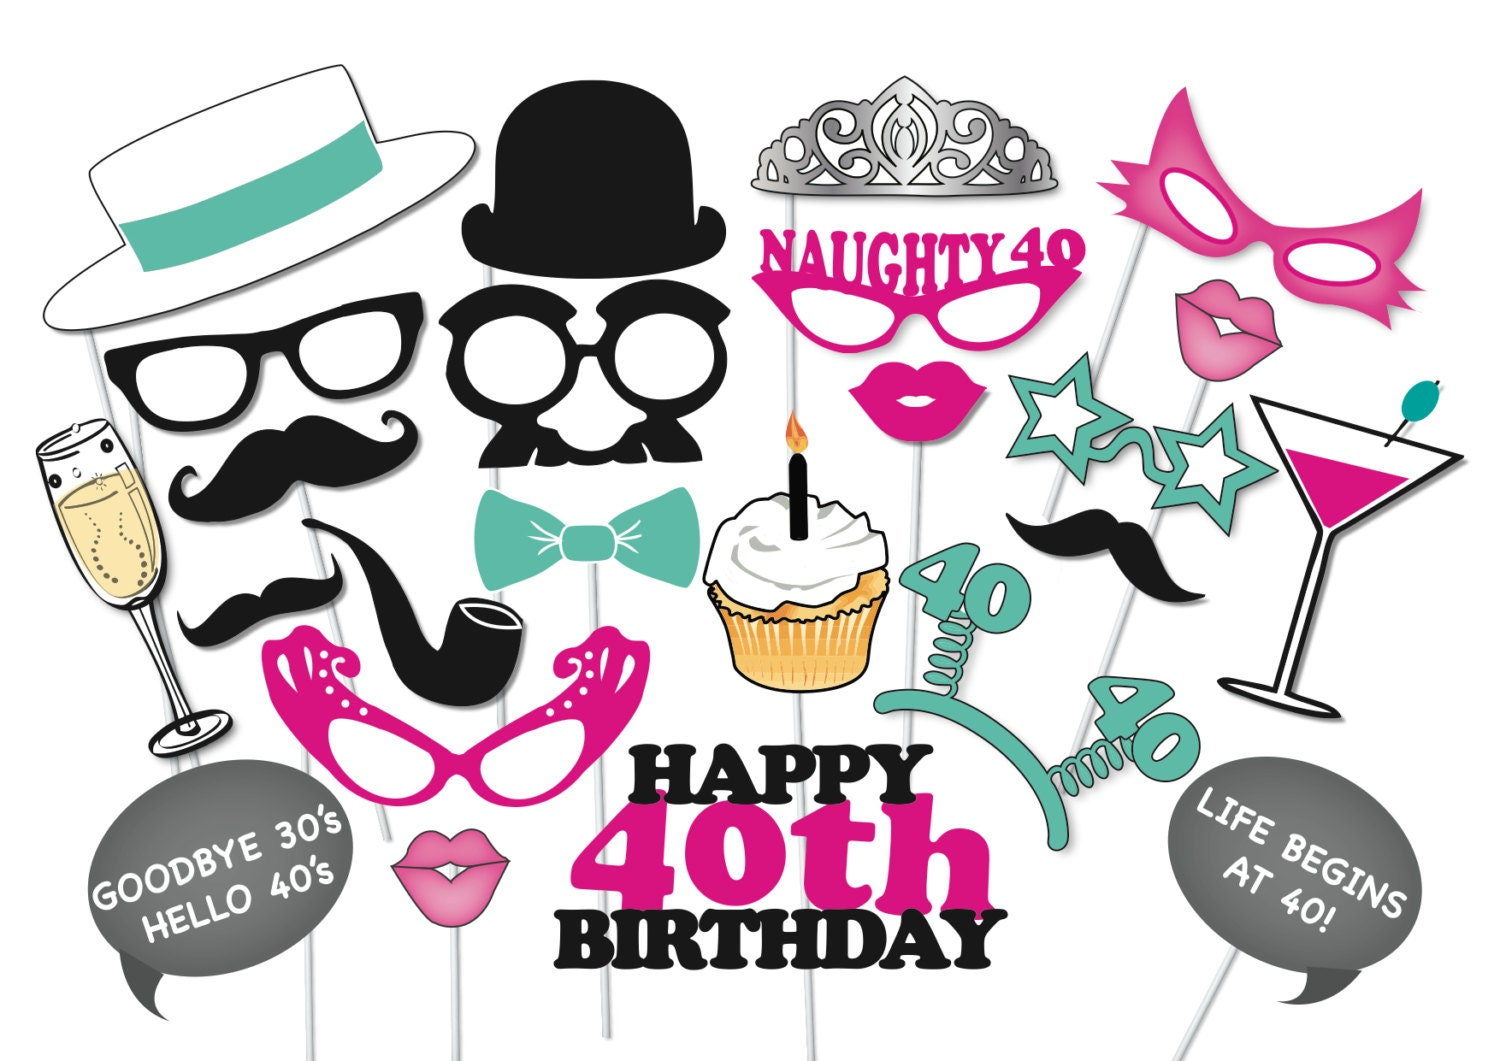 40th birthday ideas | Etsy